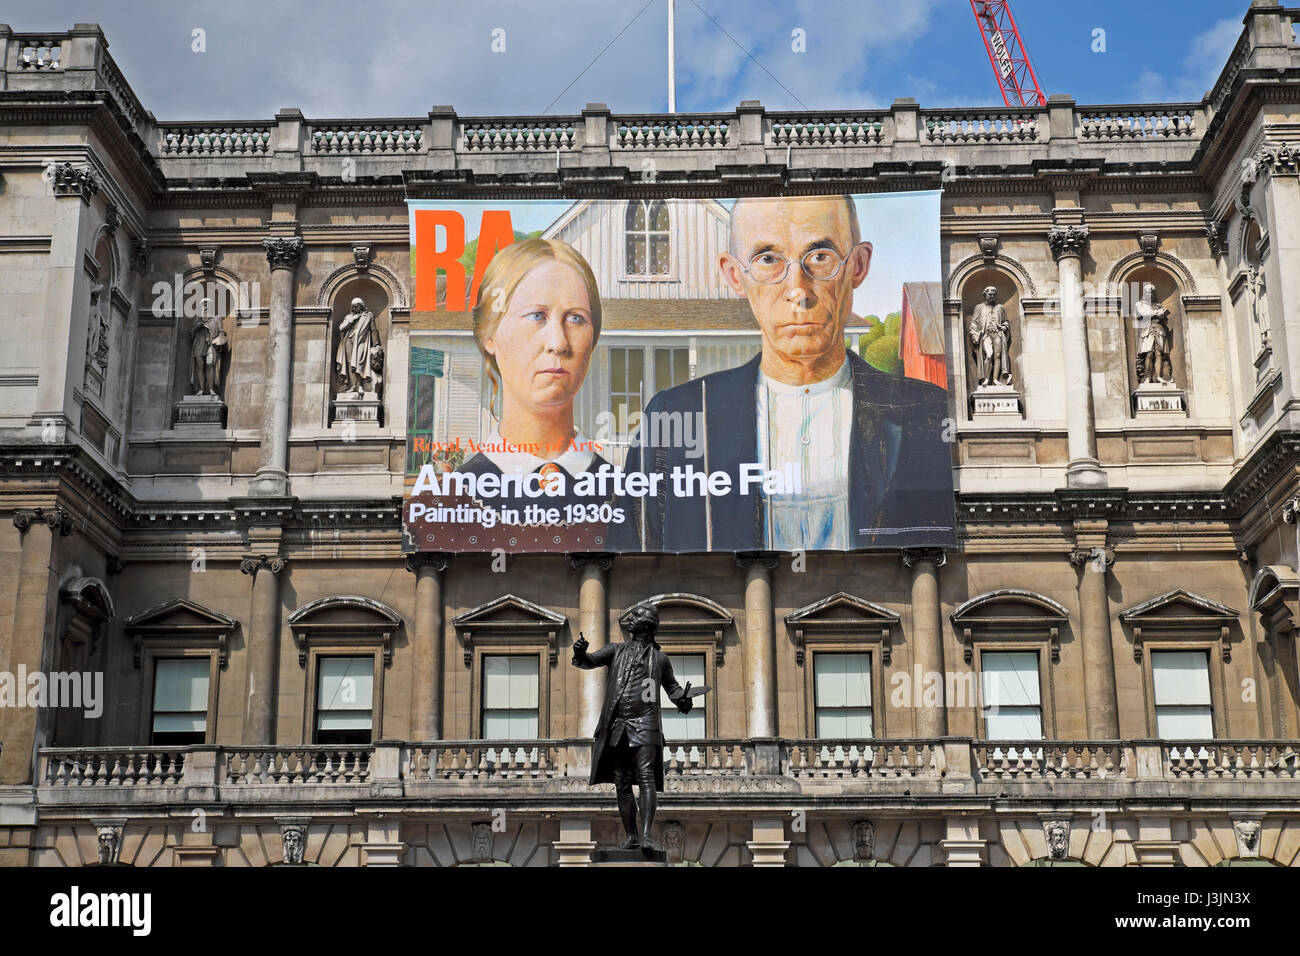 Royal Academy poster  'America after the Fall' on the exterior facade of the building  April 2017  KATHY - Stock Image